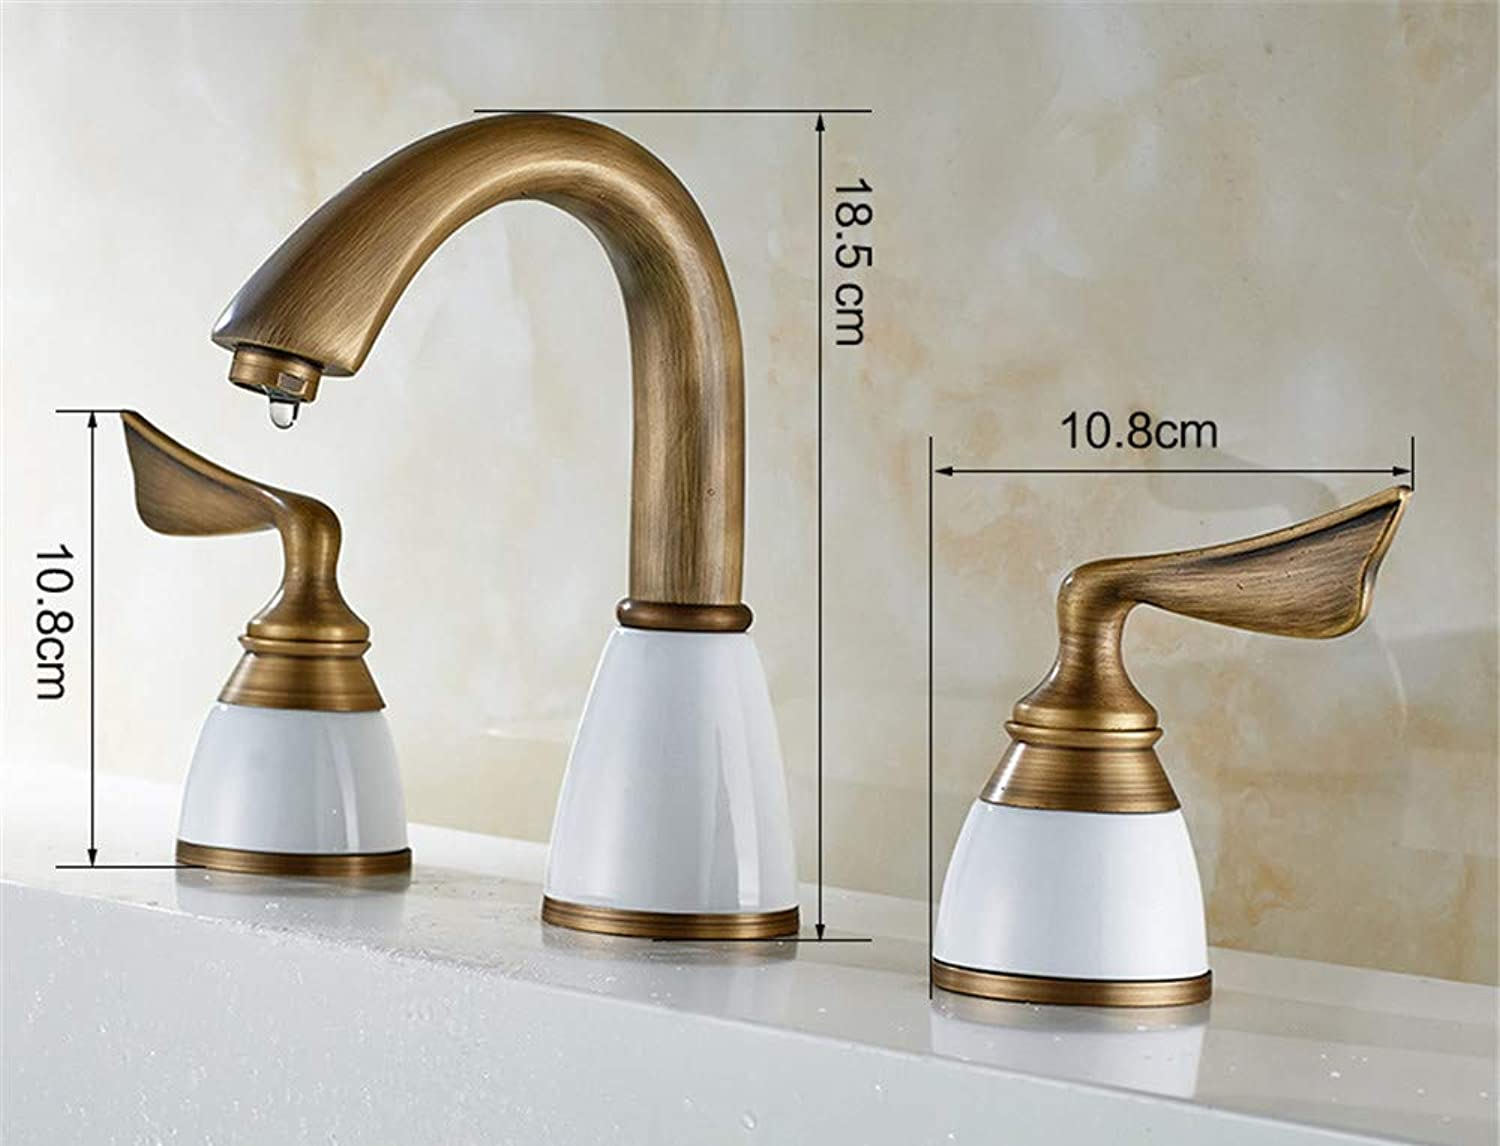 XPYFaucet Faucet Tap Taps All-copper basin three-piece three-hole split hot and cold water